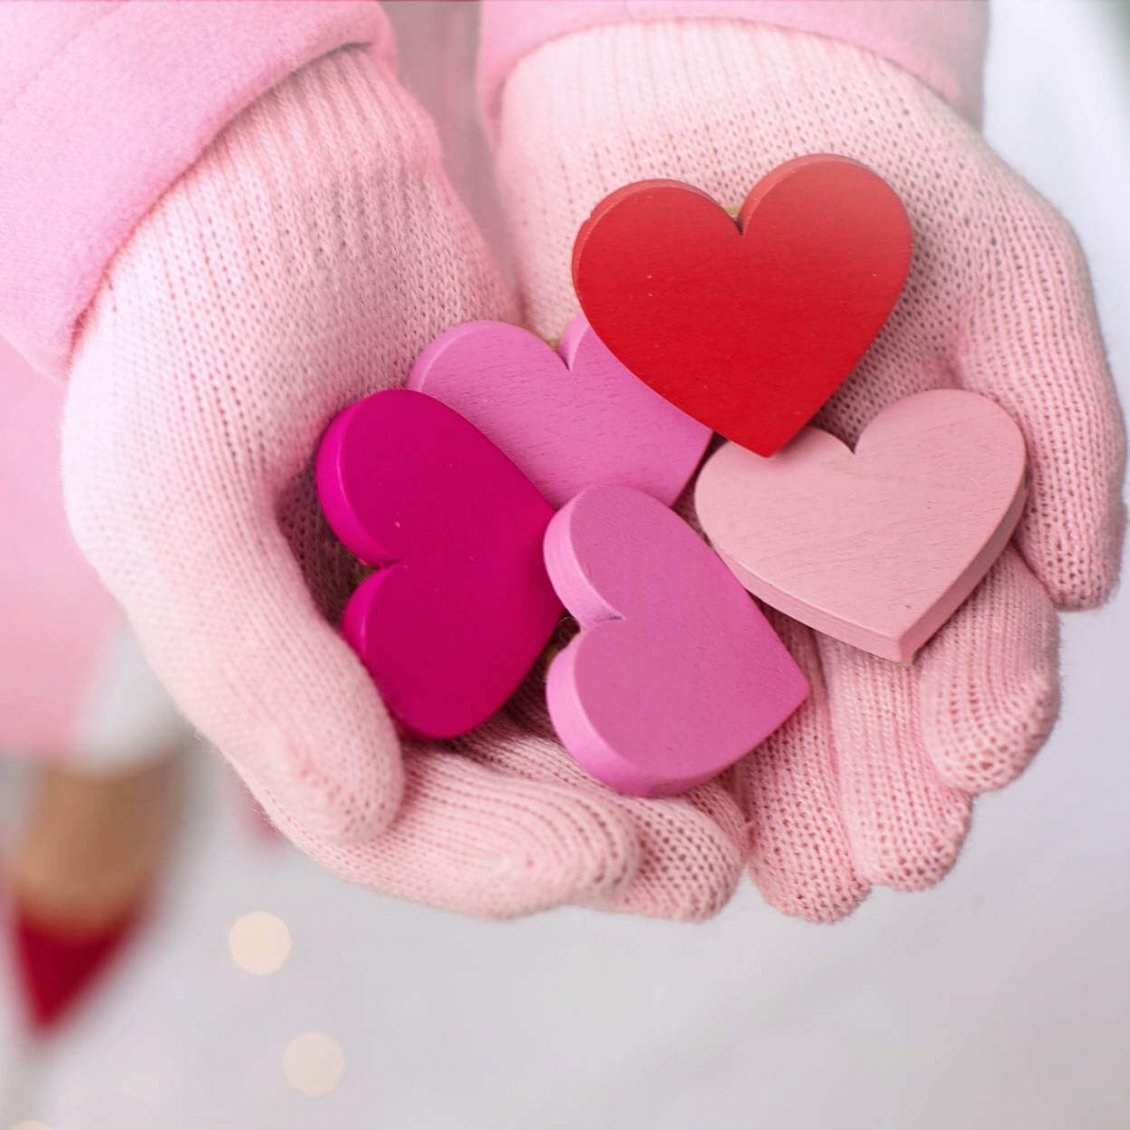 Download Wallpaper Painted wooden hearts on my hand - Love  red pink colors